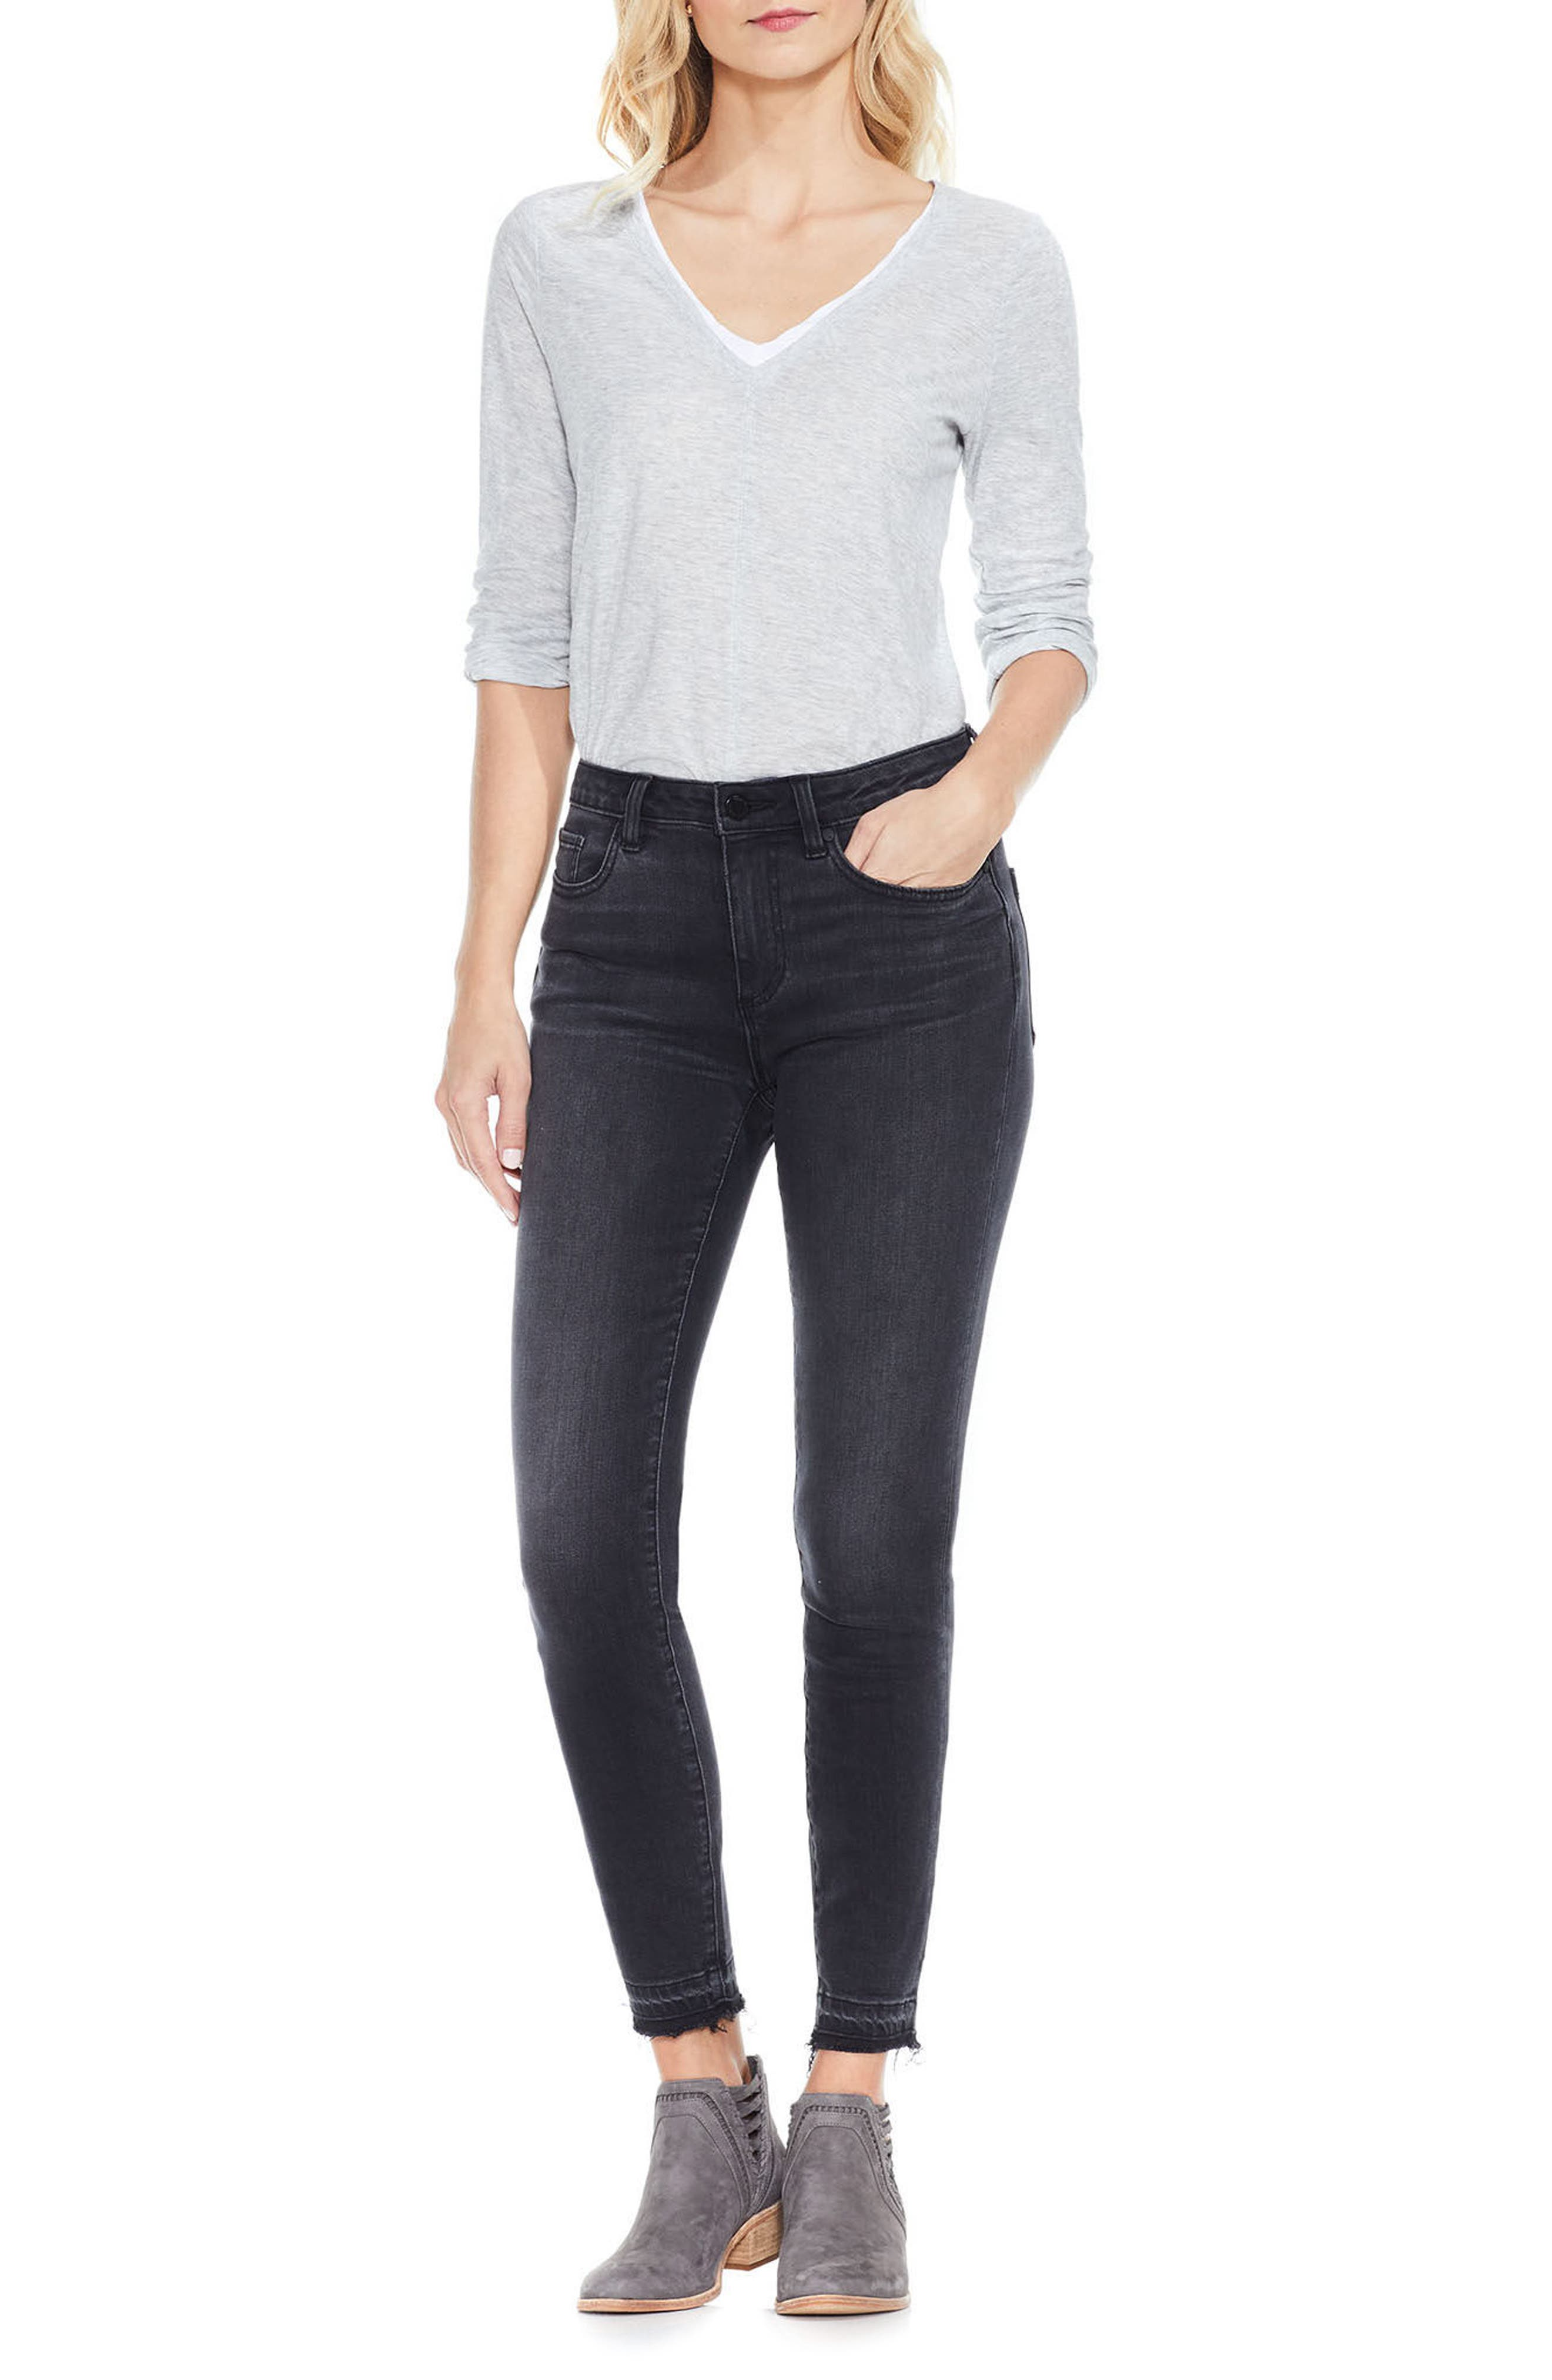 Alternate Image 2  - Two by Vince Camuto Release Hem Ankle Jeans (Coal)